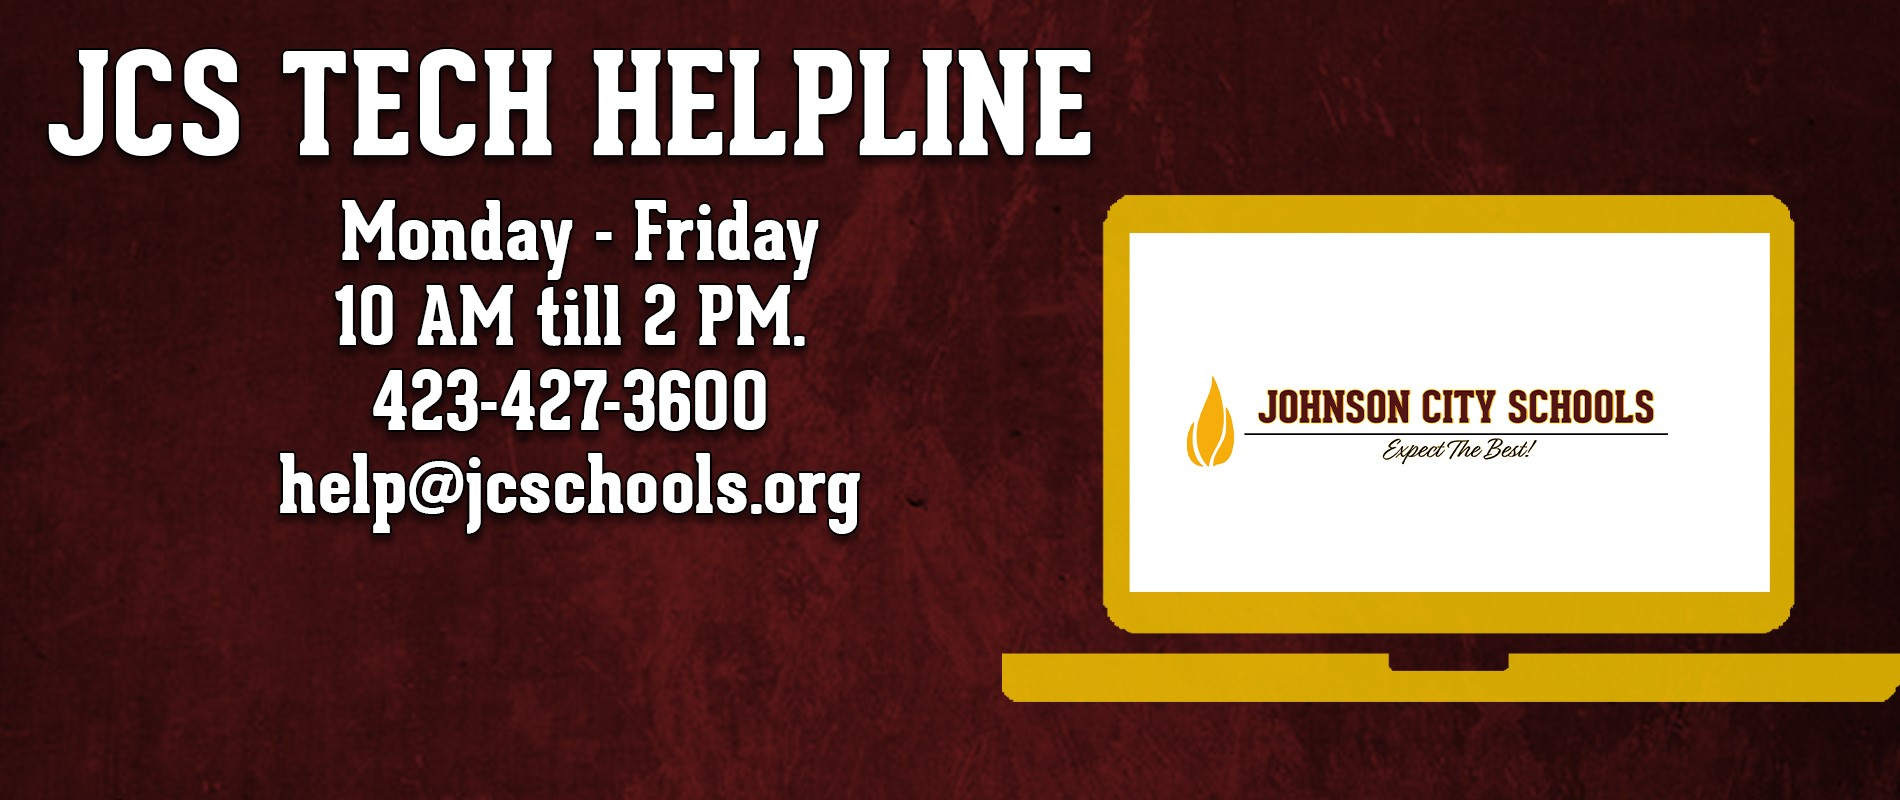 JCS Tech Helpline